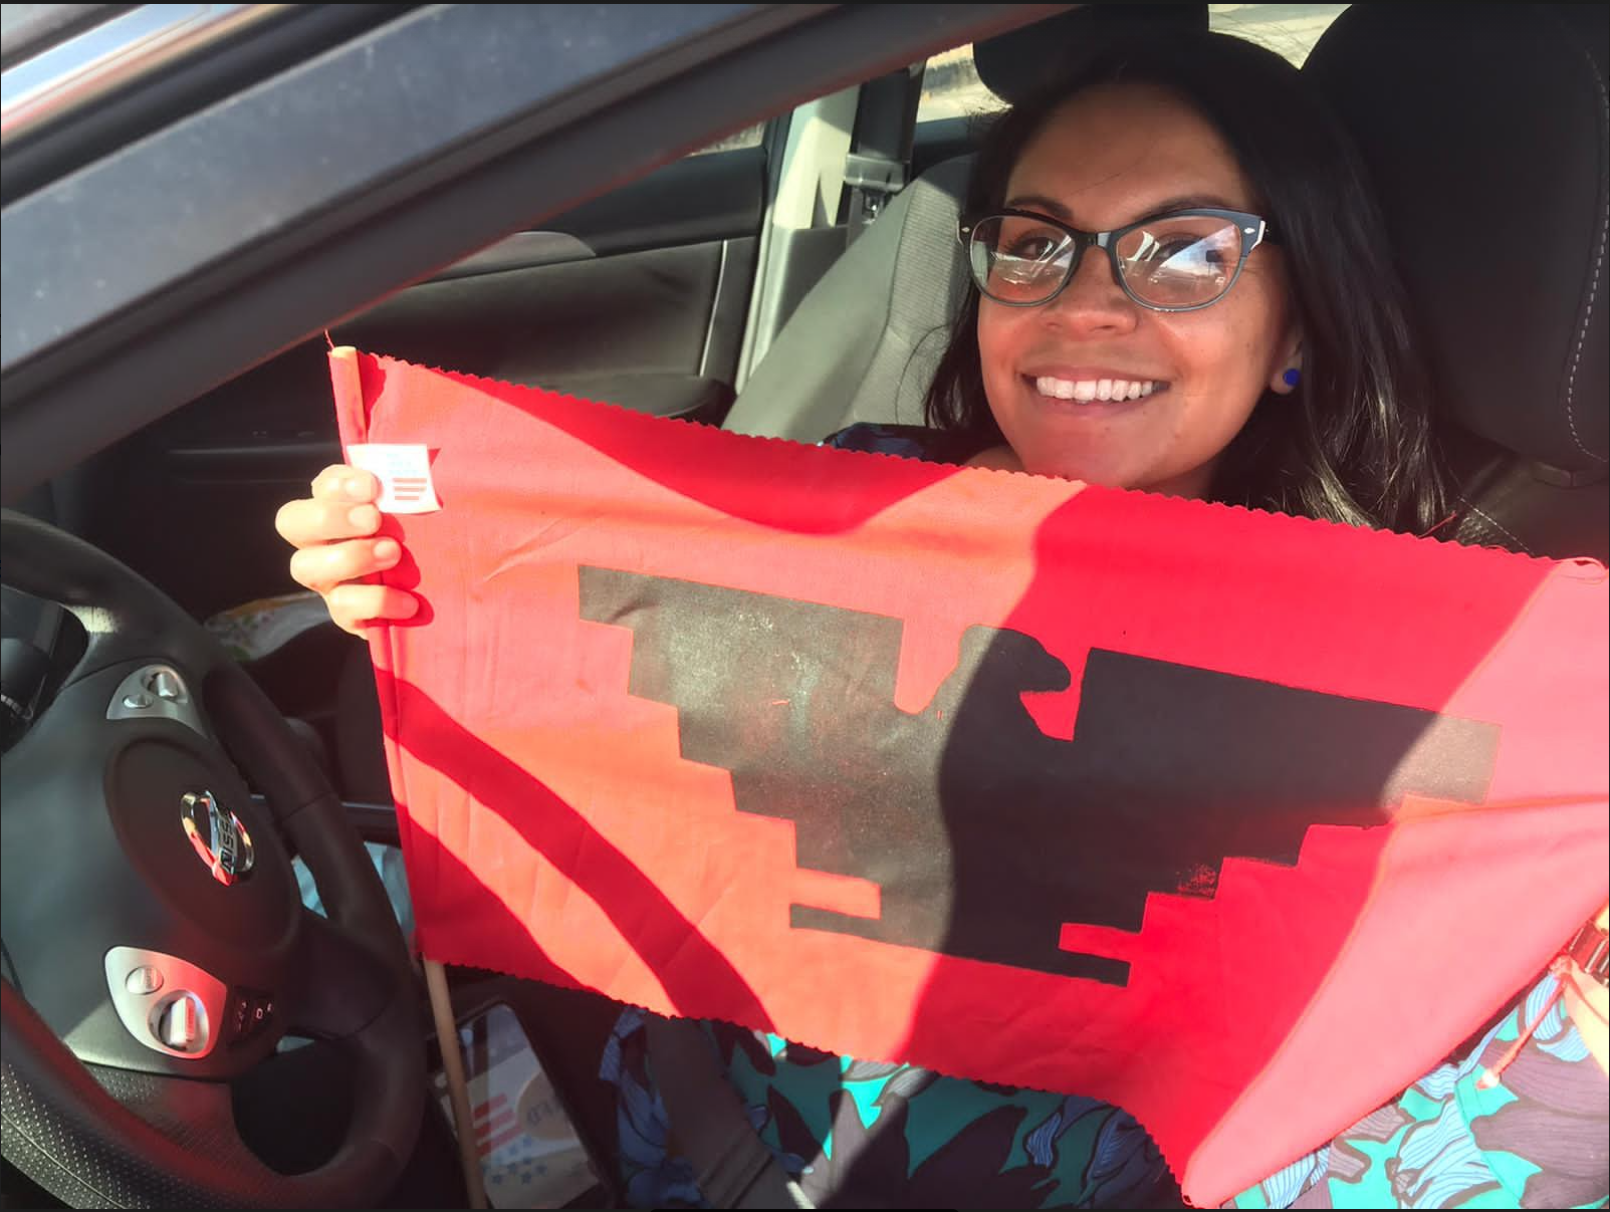 Driver sits behind the wheel smiling and holding up a red and black United Farm Worker flag emblazoned with a black aztec eagle on a red field.